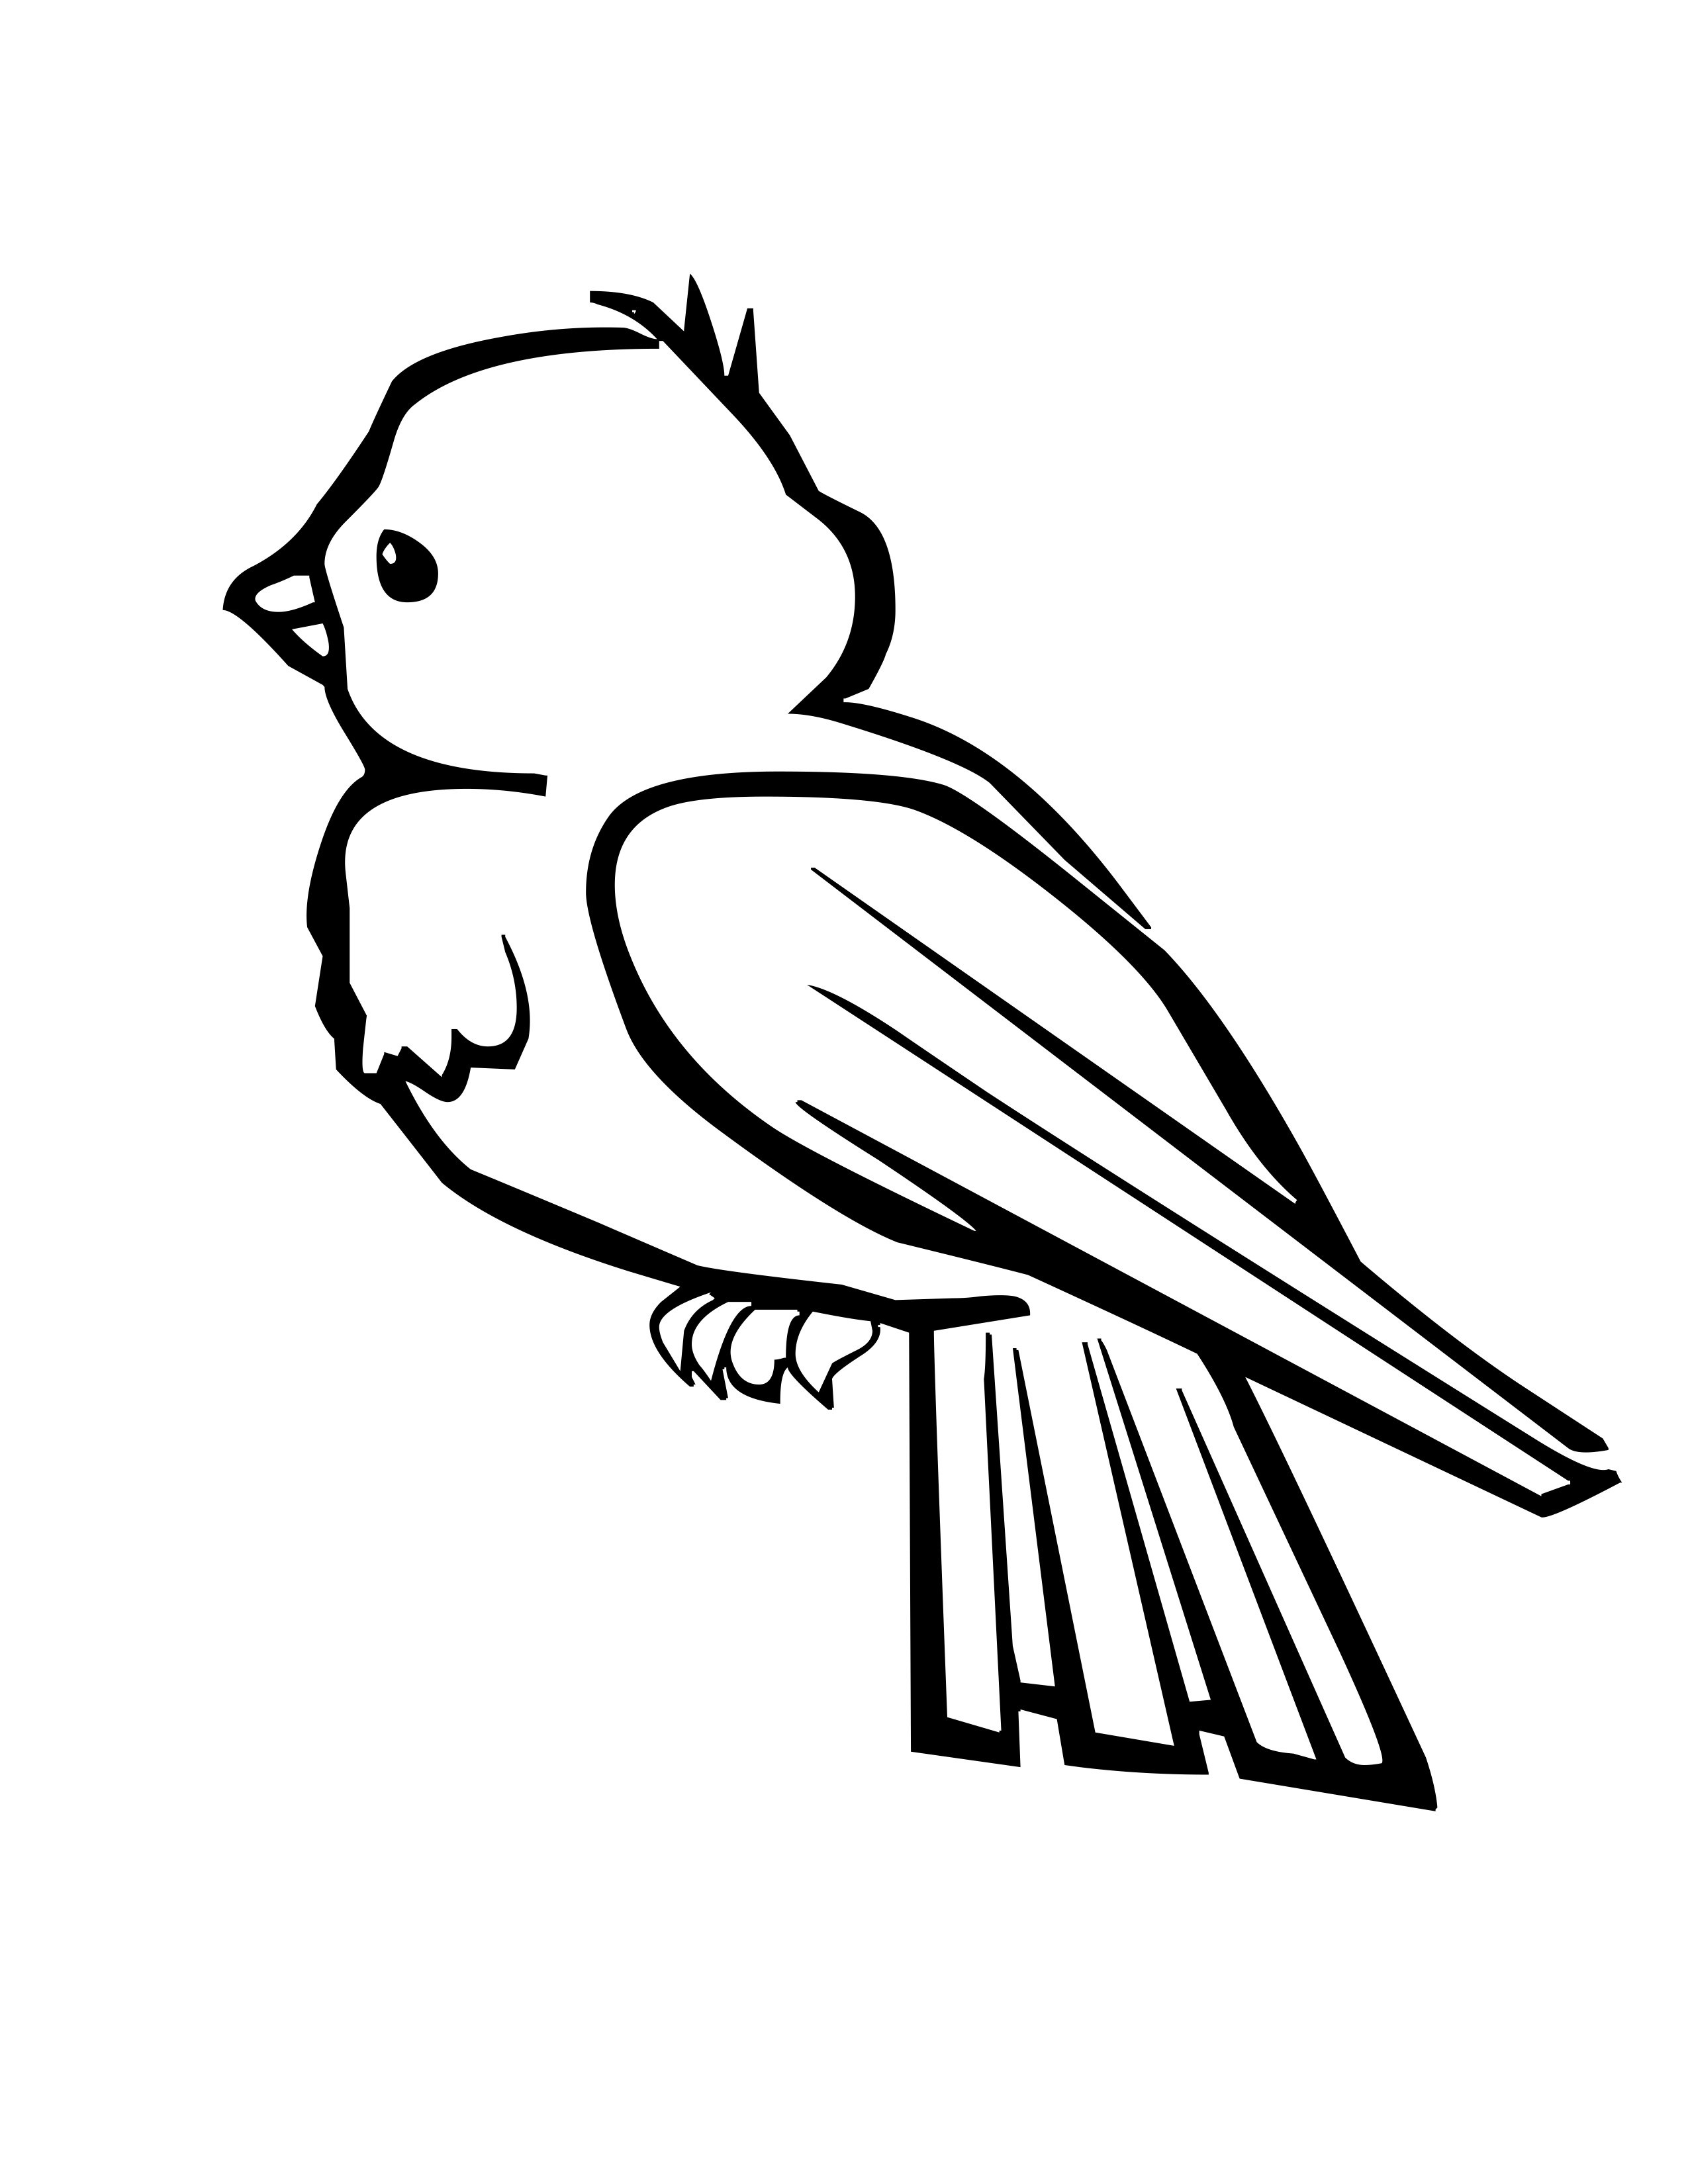 coloring pages for kids birds drawing for kids birds at getdrawings free download for coloring kids birds pages